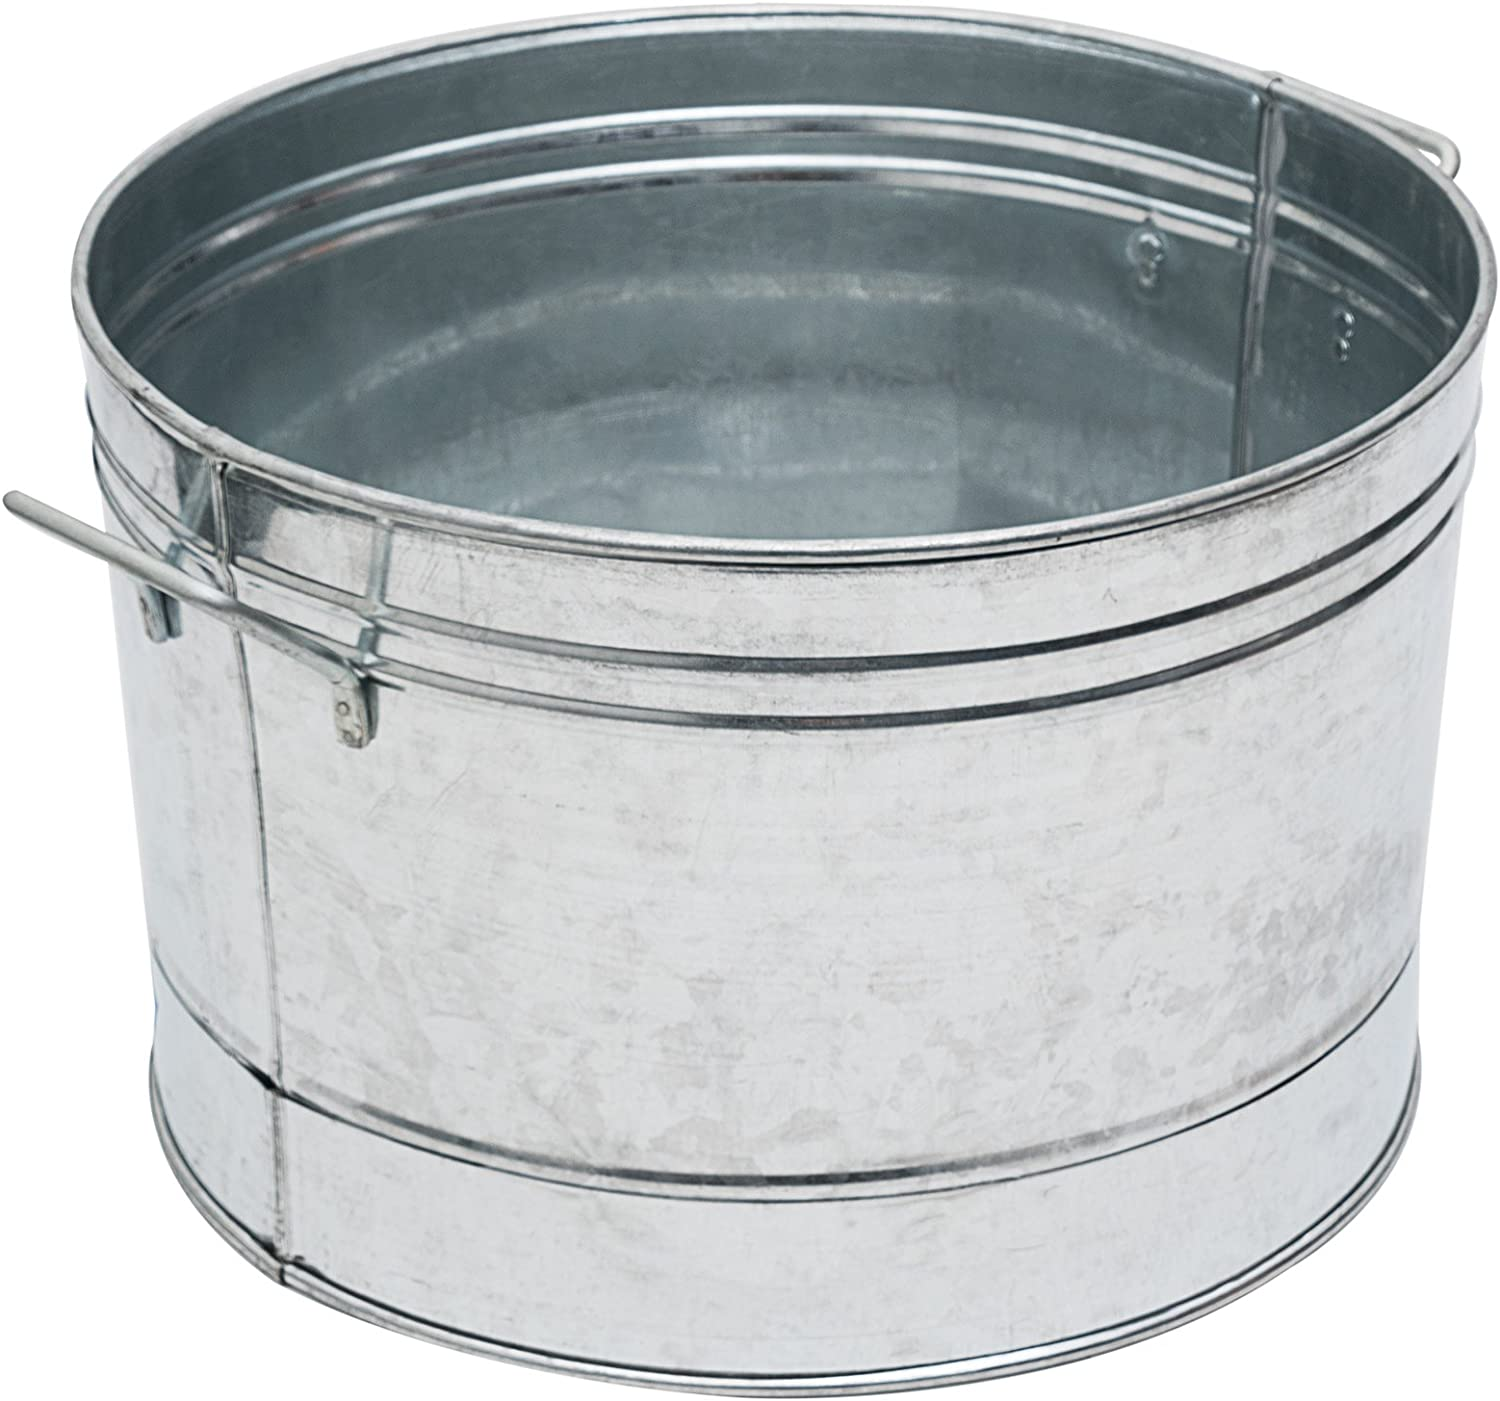 Achla Designs C-50 Round Galvanized Steel tub, Standard